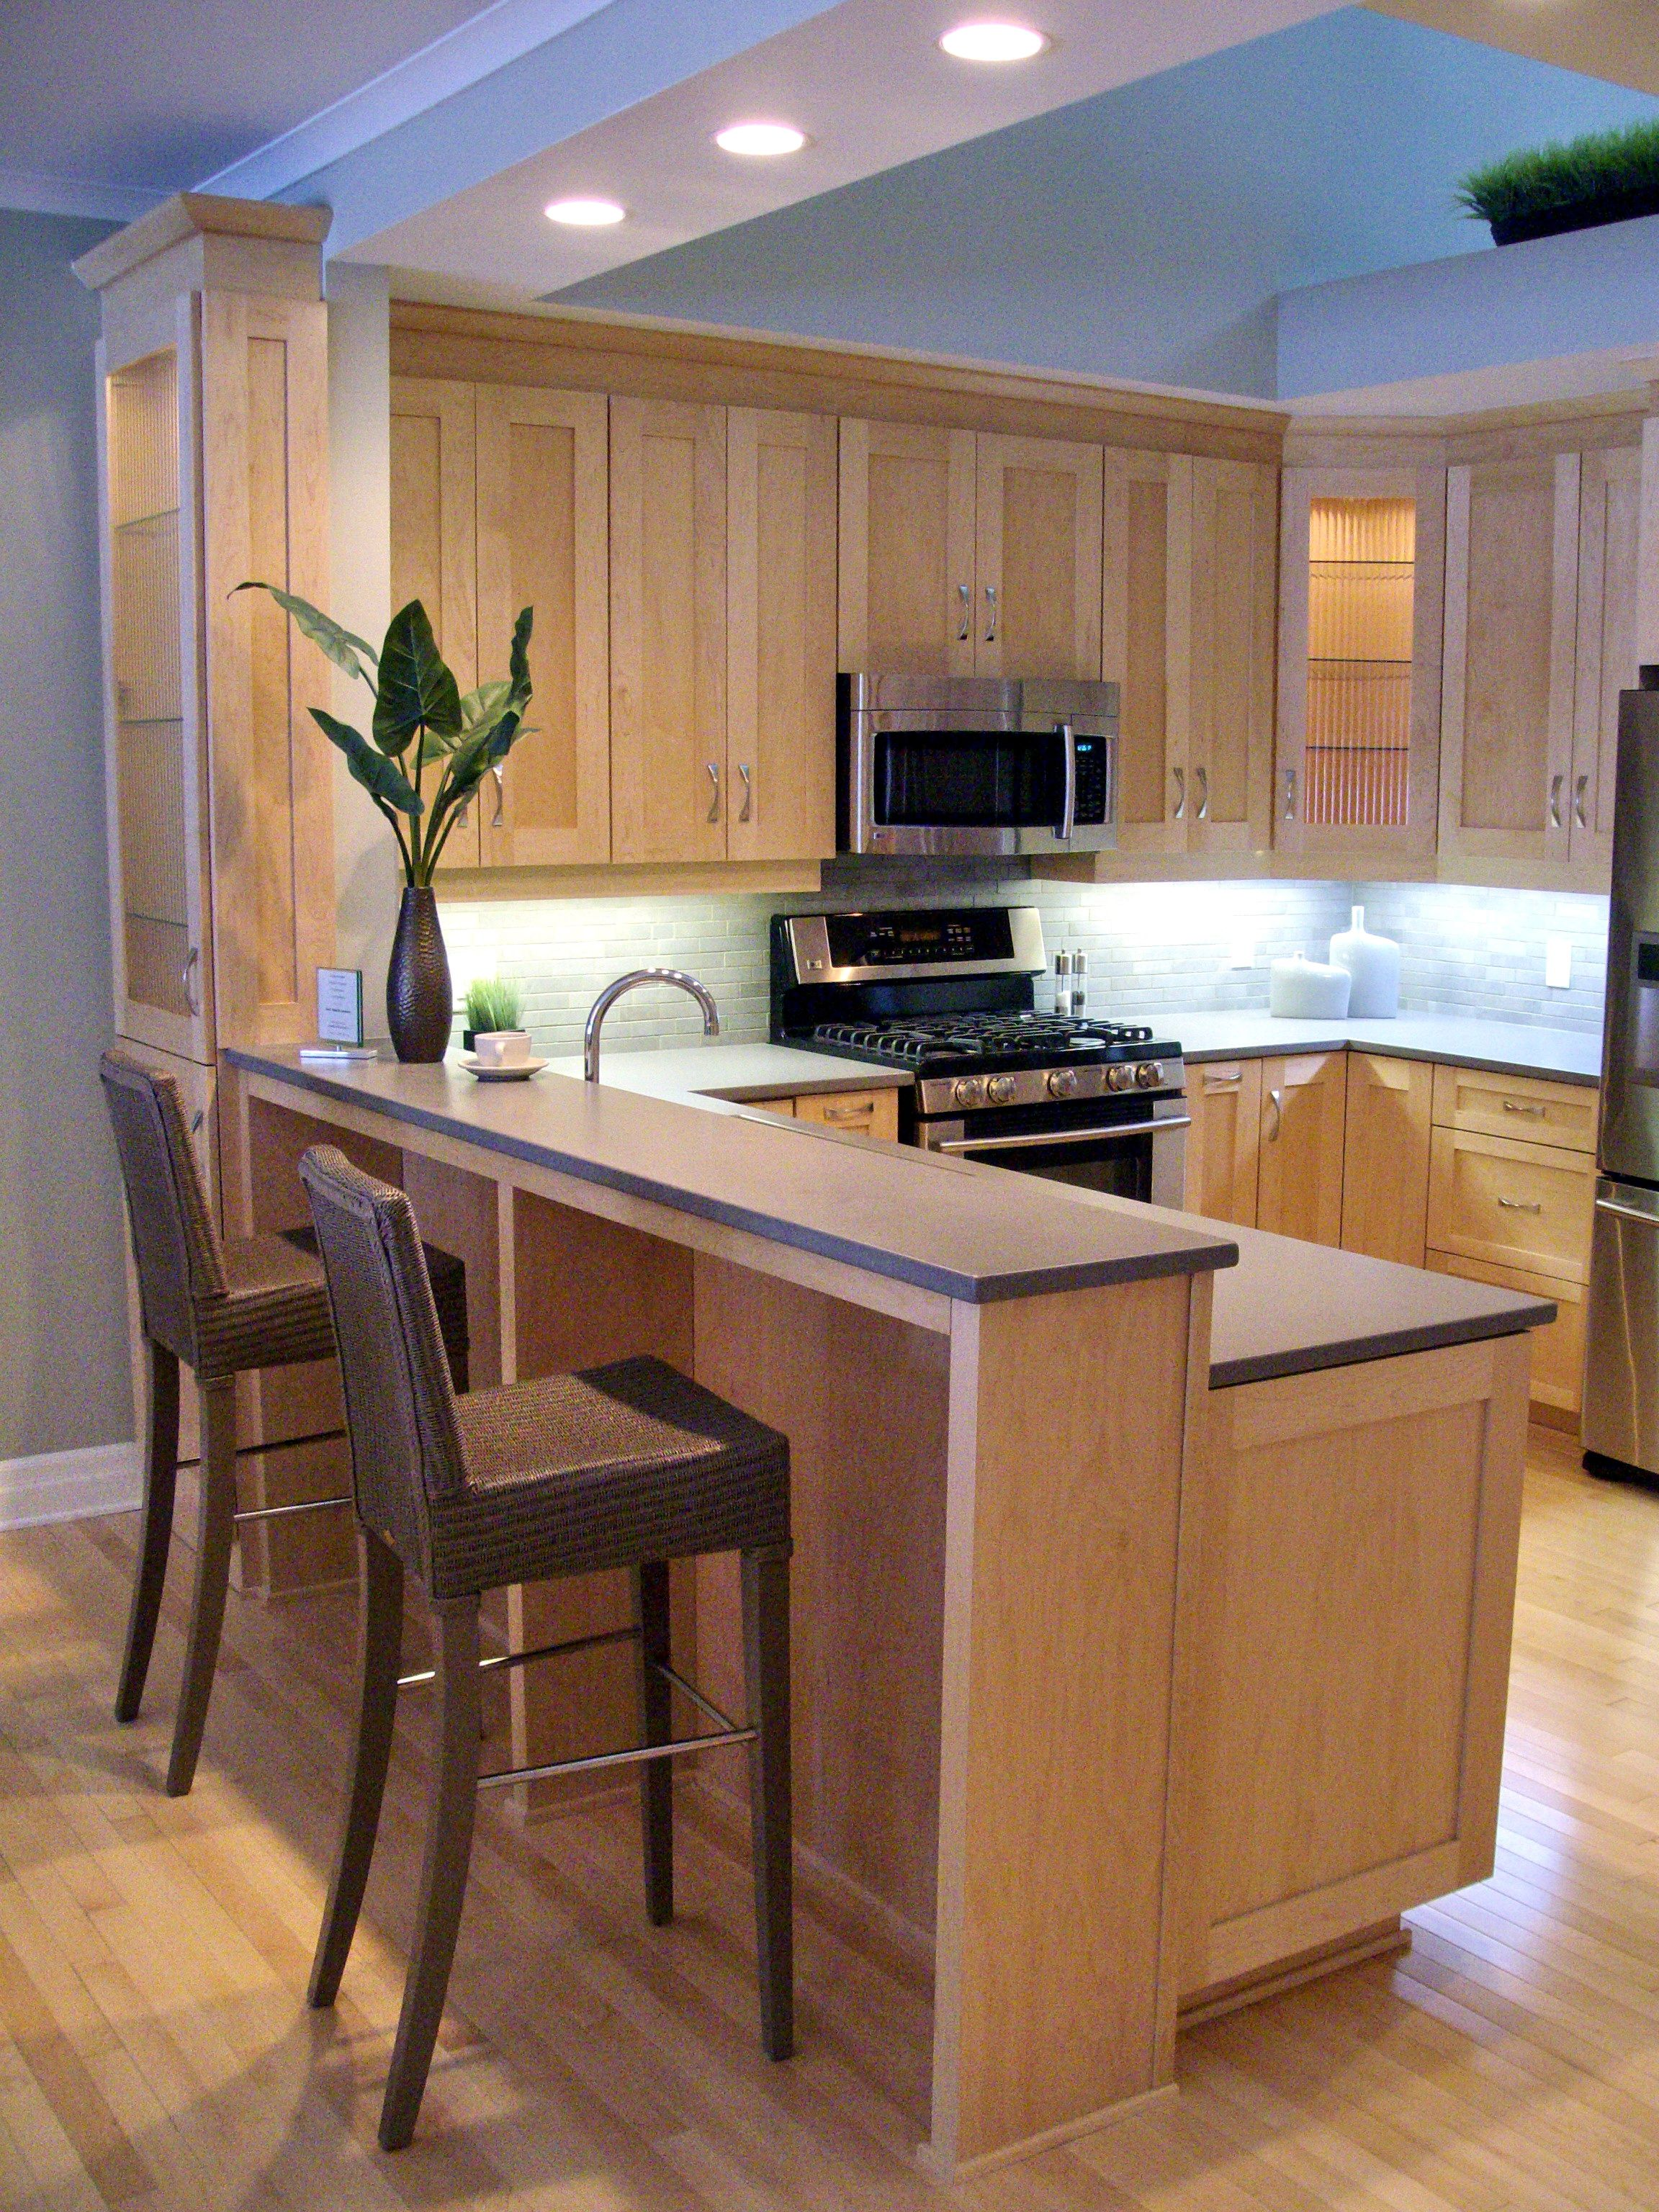 Natural Maple Shaker Cabinets, with Grey Silestone Quartz ... on Countertop Colors For Maple Cabinets  id=40846